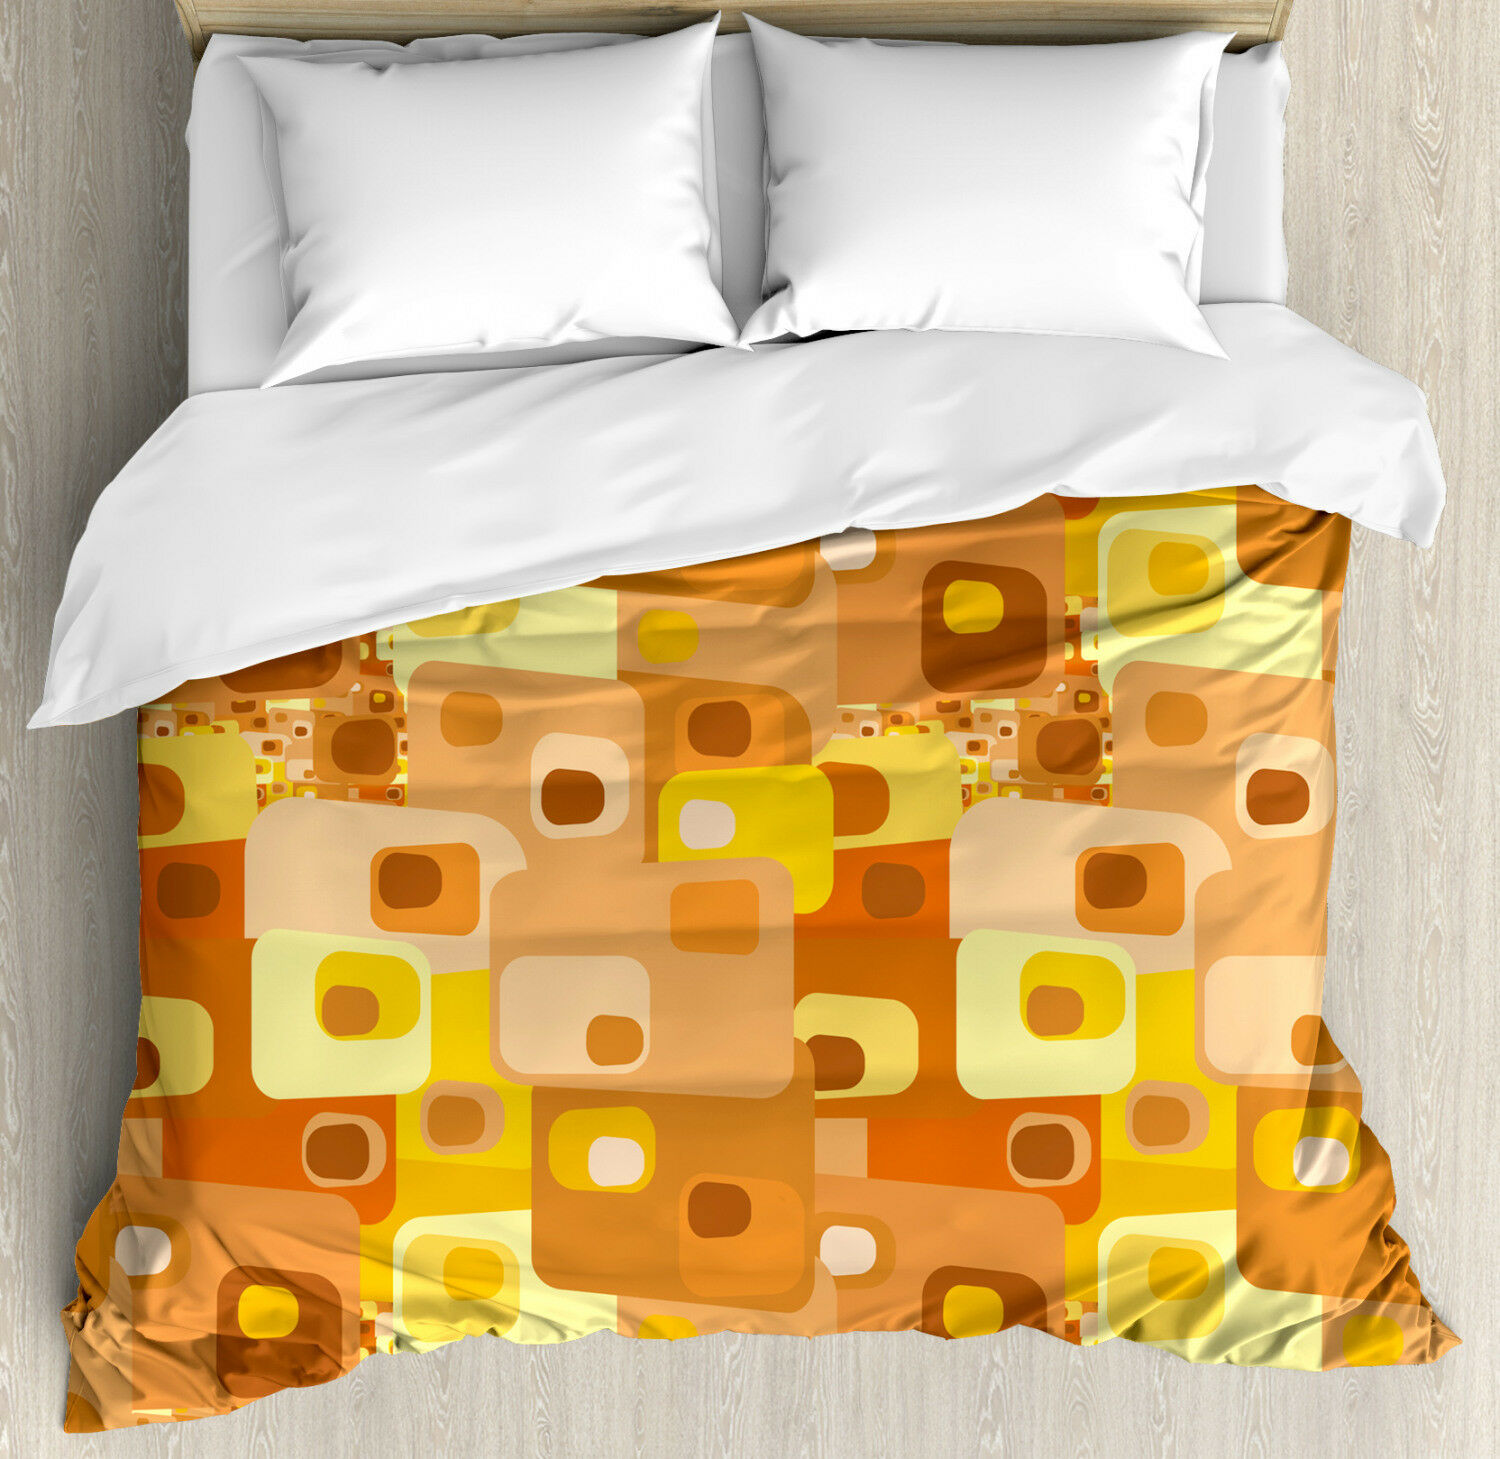 Retro Duvet Cover Set with Pillow Shams Rounded Funky Squares Print